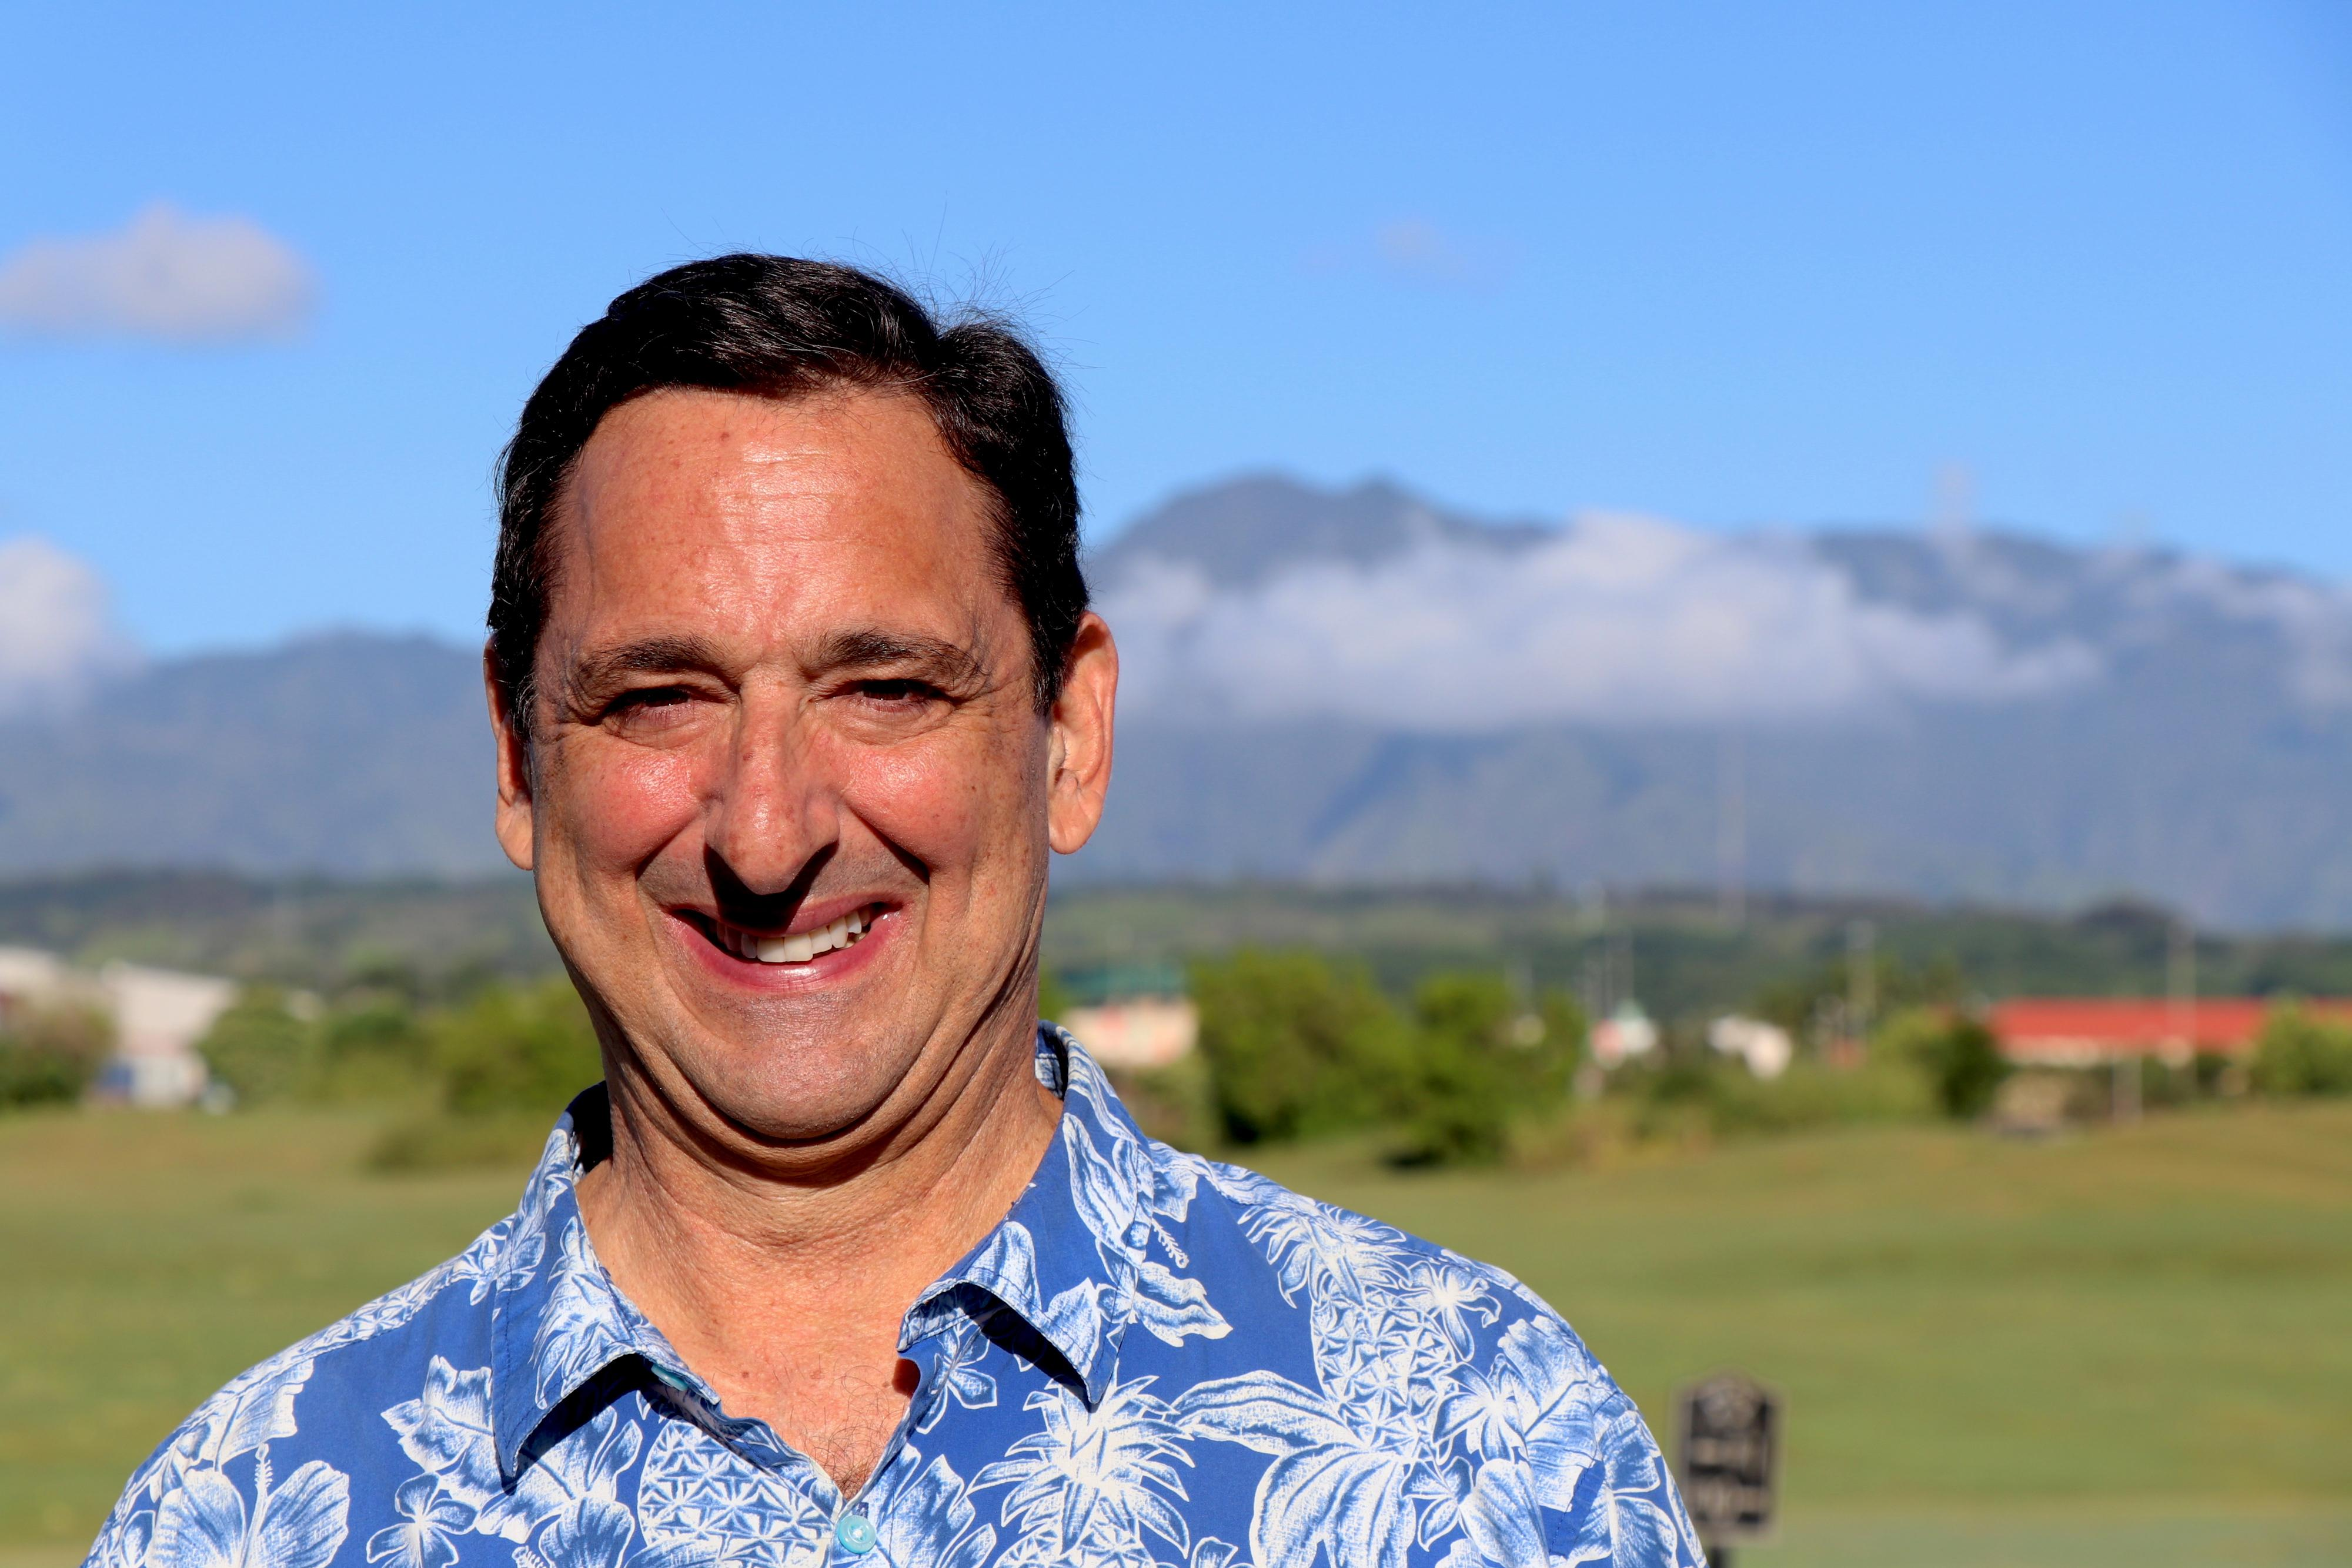 Fran Roach, Aloha Golf Group President